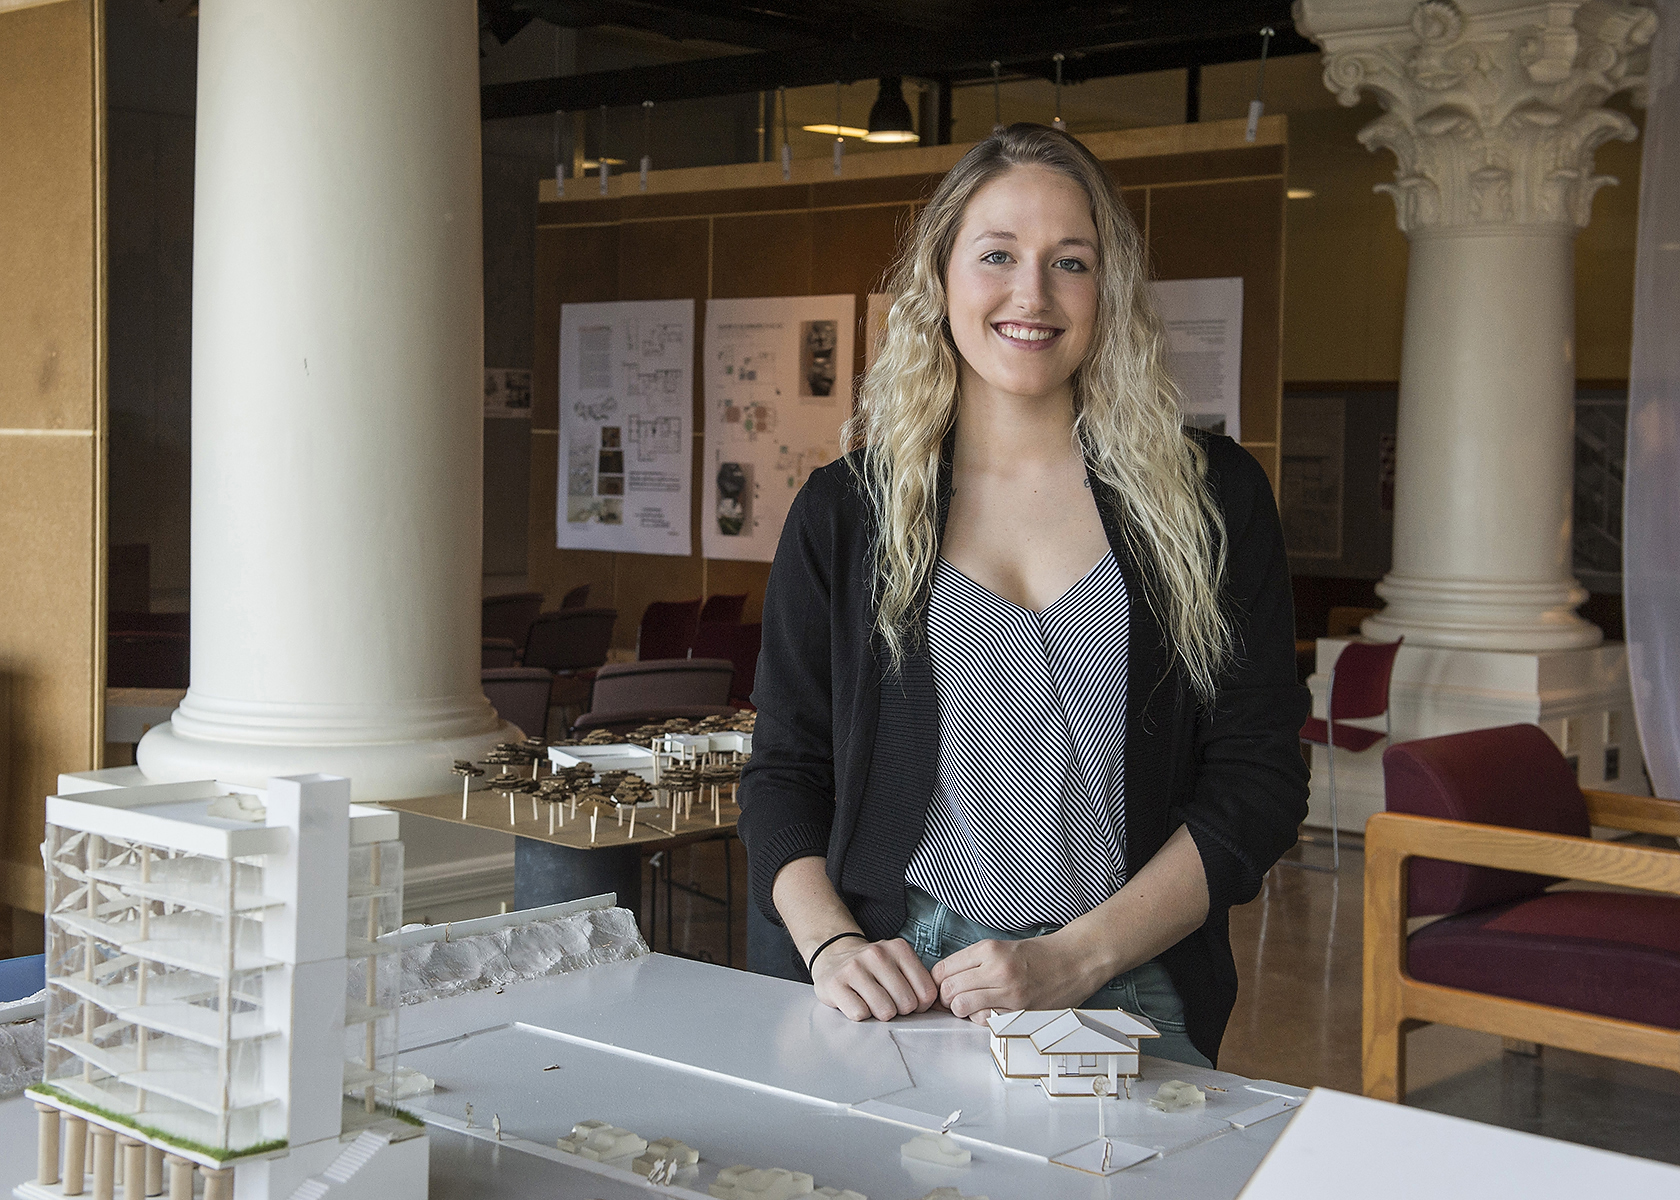 Caitlyn Cathcart Wins Prestigious Student Interior Design Competition